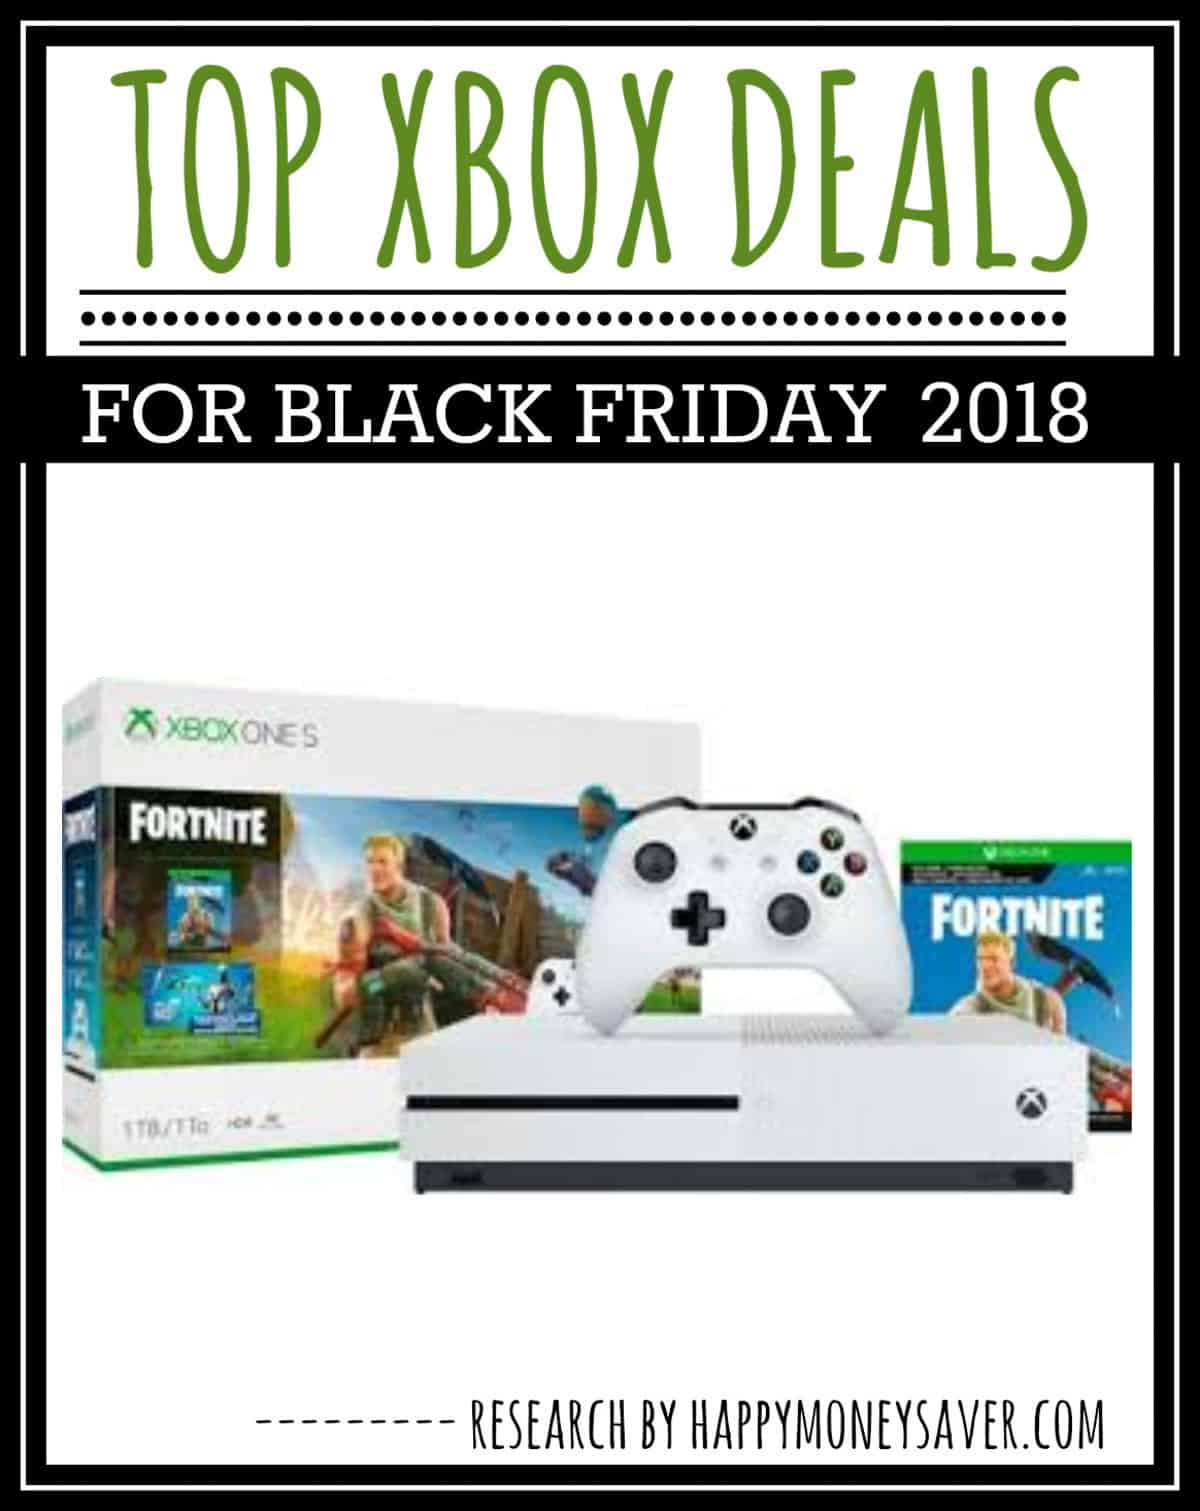 Here is a round up of all the top xbox black friday deals for 2018 including bundles, controllers and games.